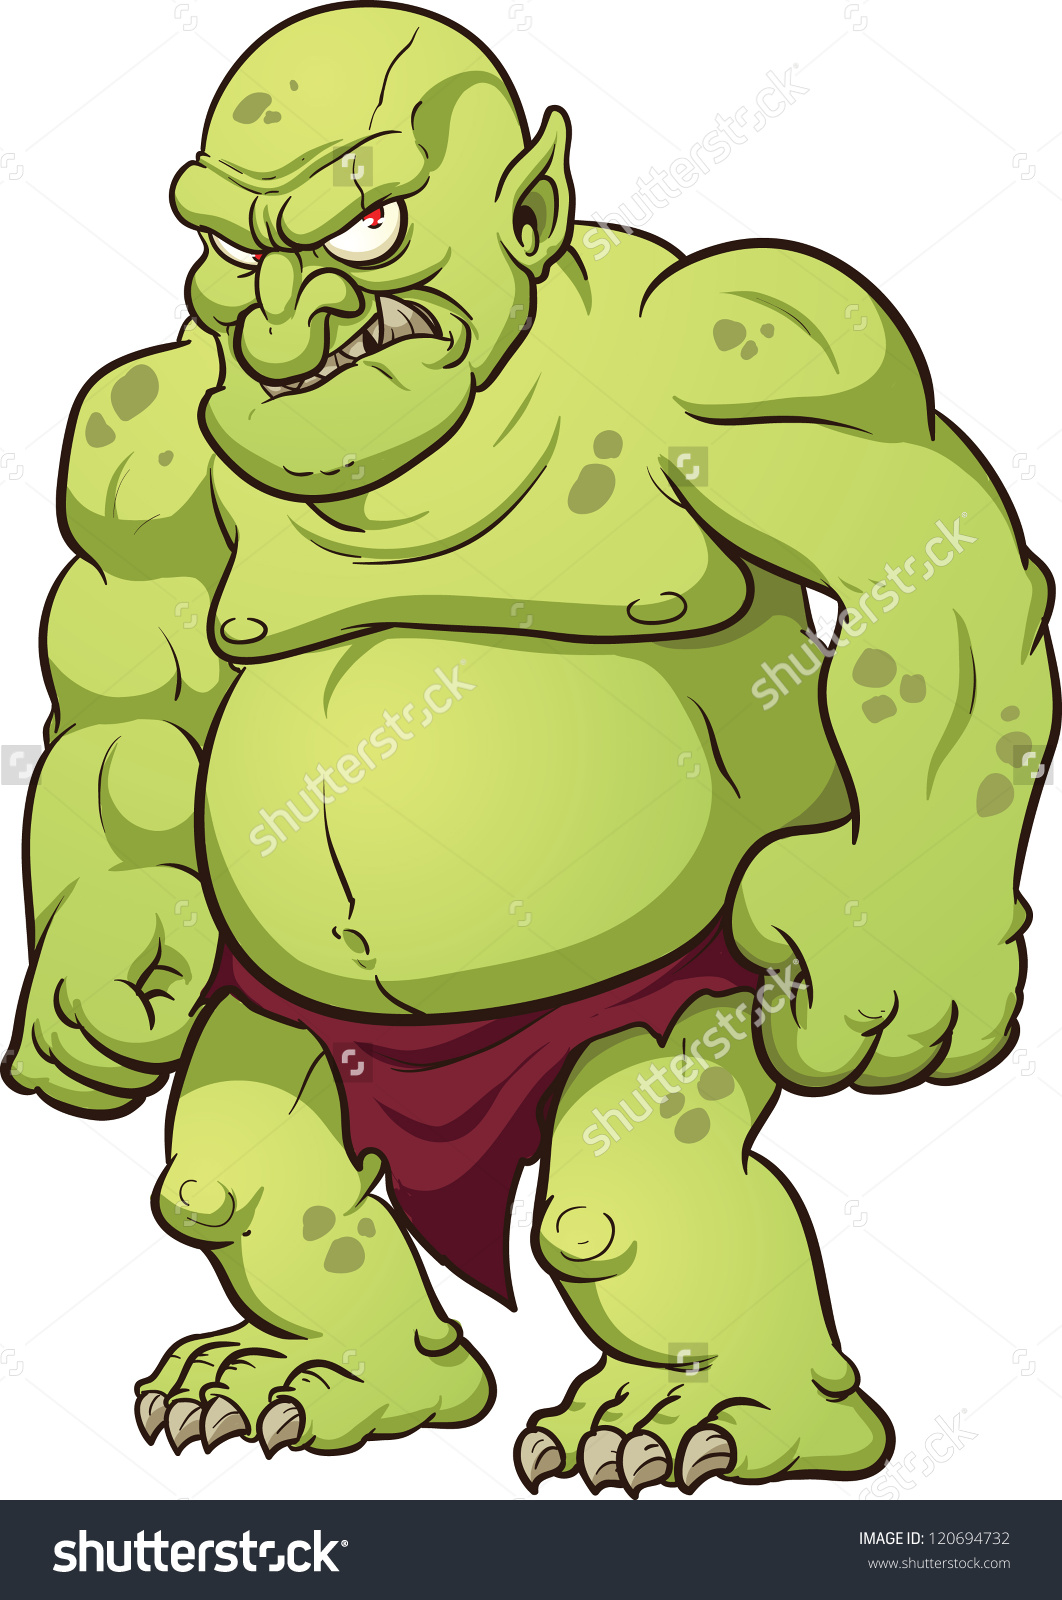 Ogre clipart #2, Download drawings